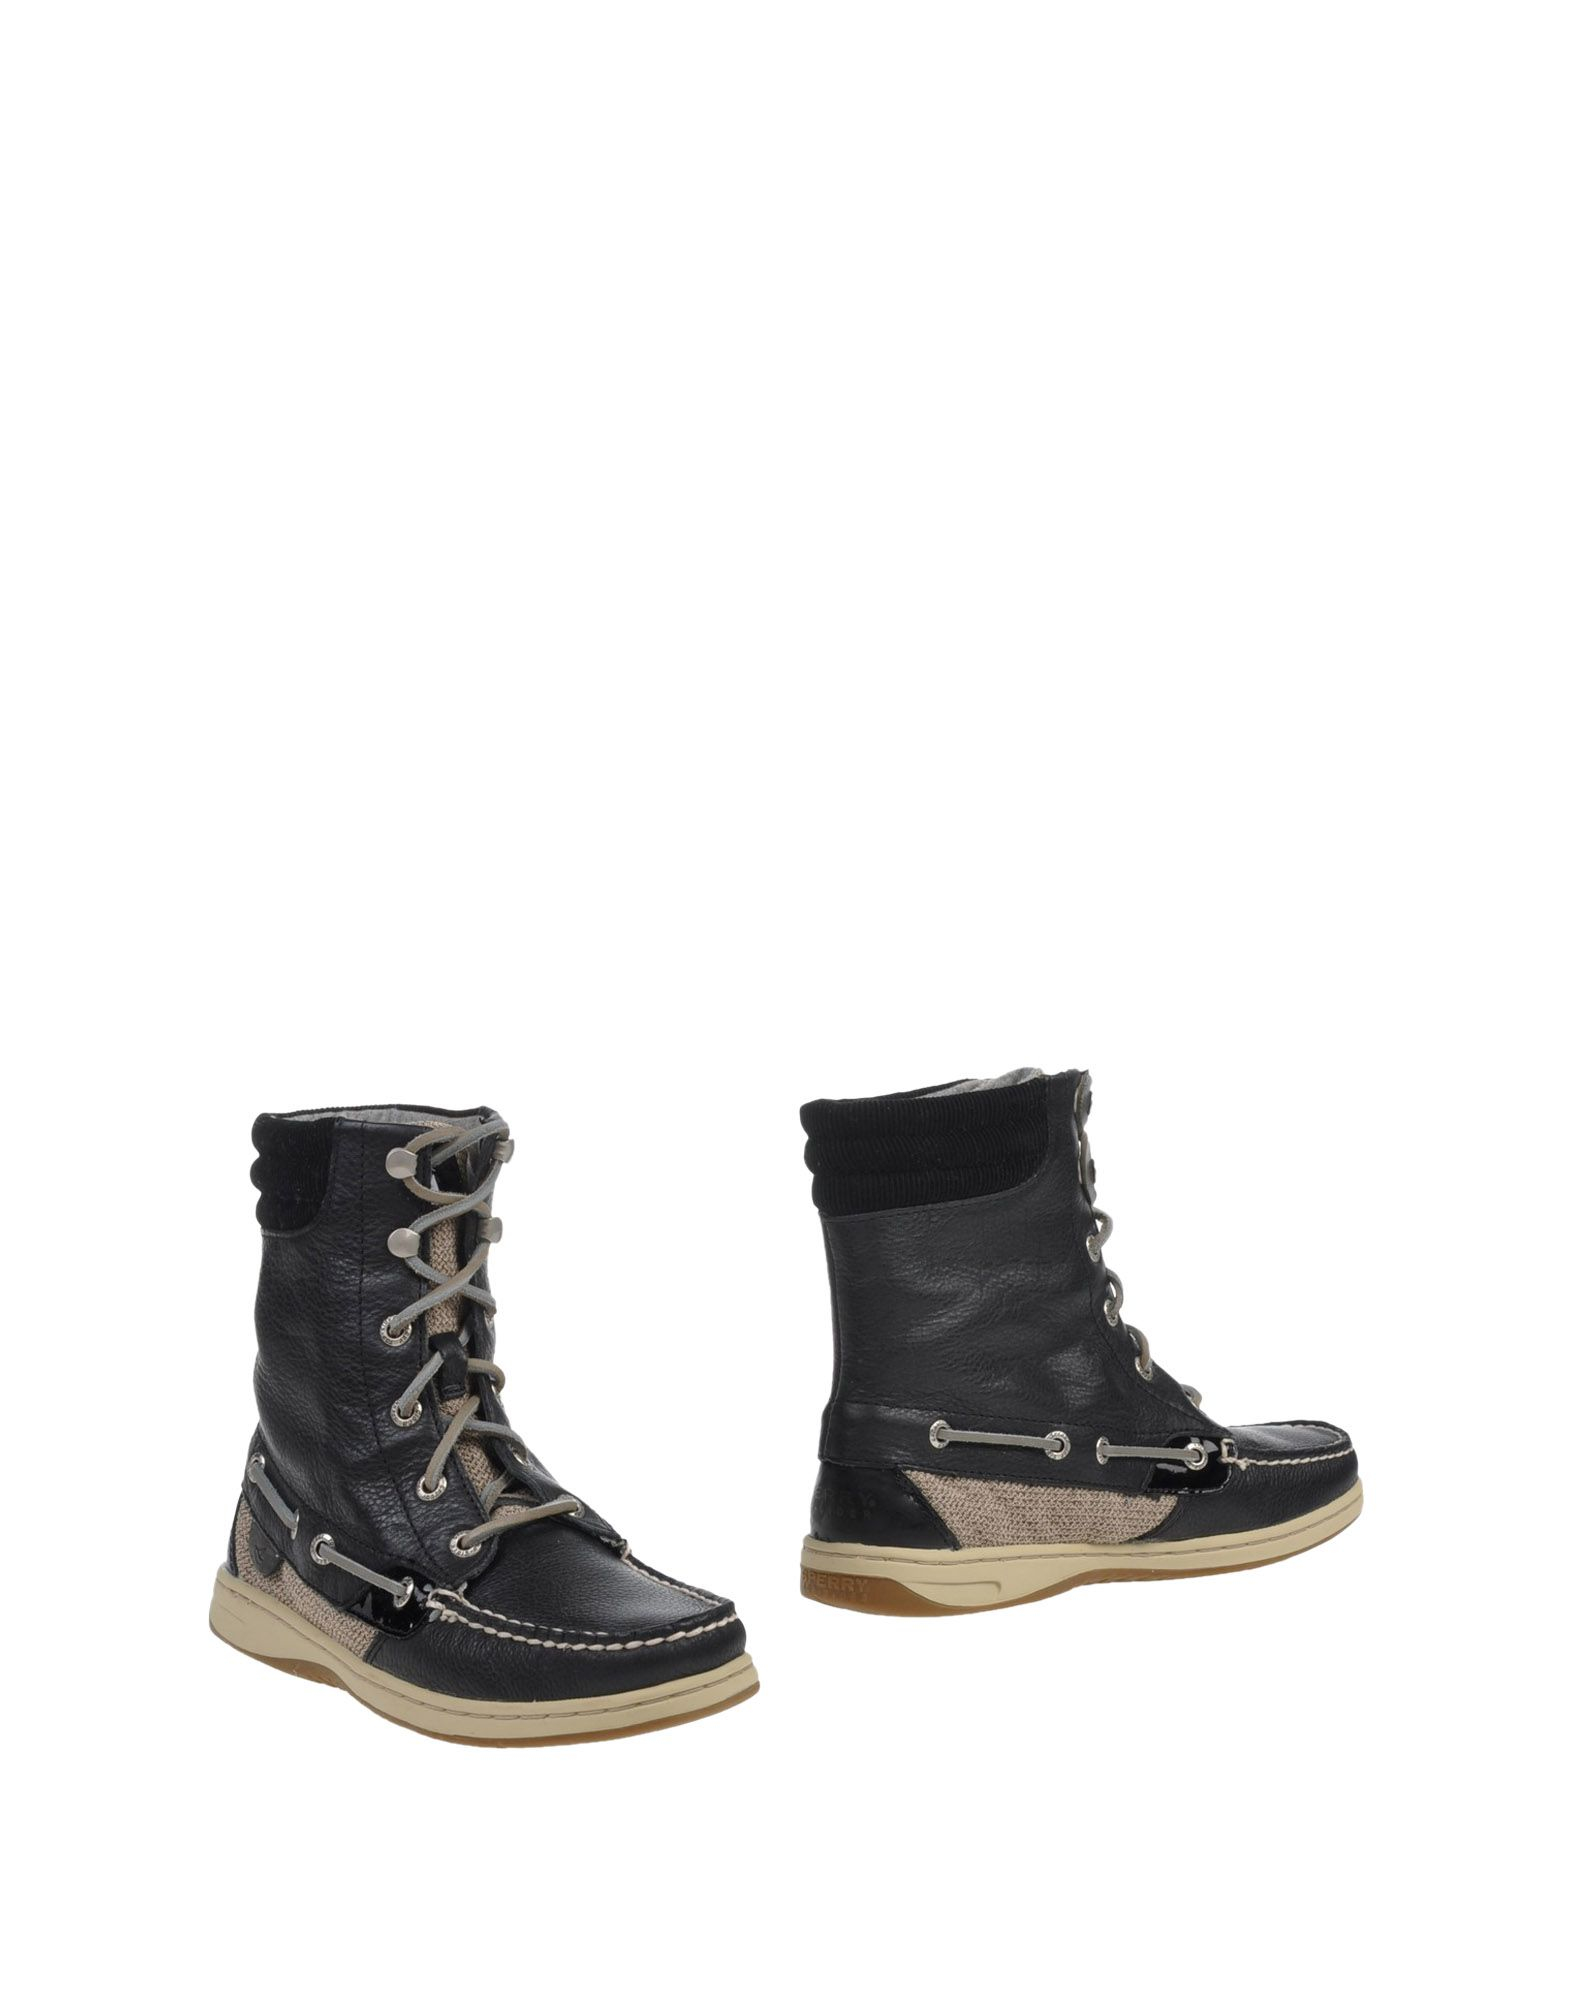 sperry top sider ankle boots in black lyst